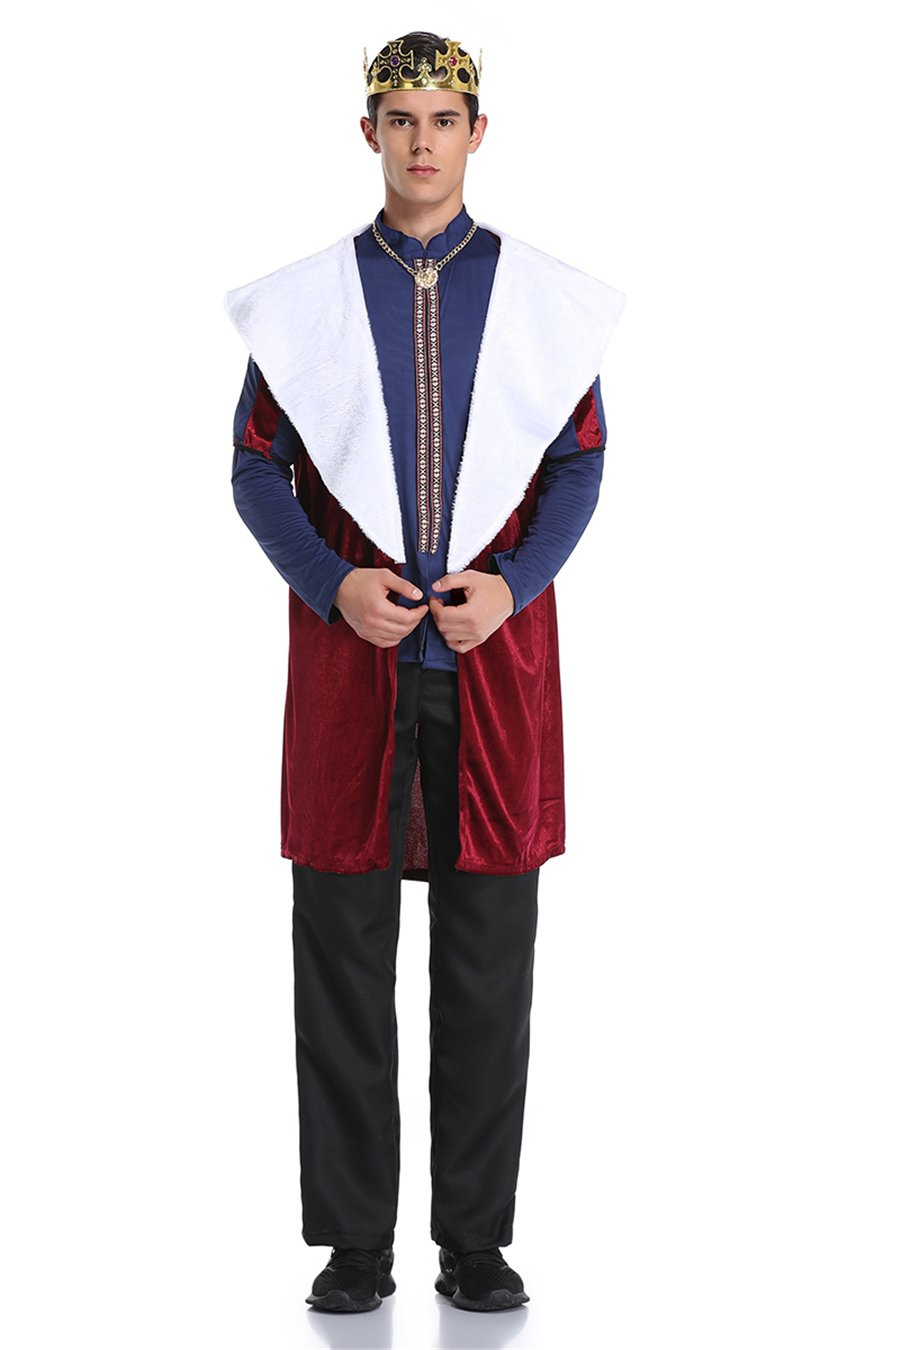 Retro Court Costume For Men Medieval King Robes Carnival Emperor Cosplay Uniform